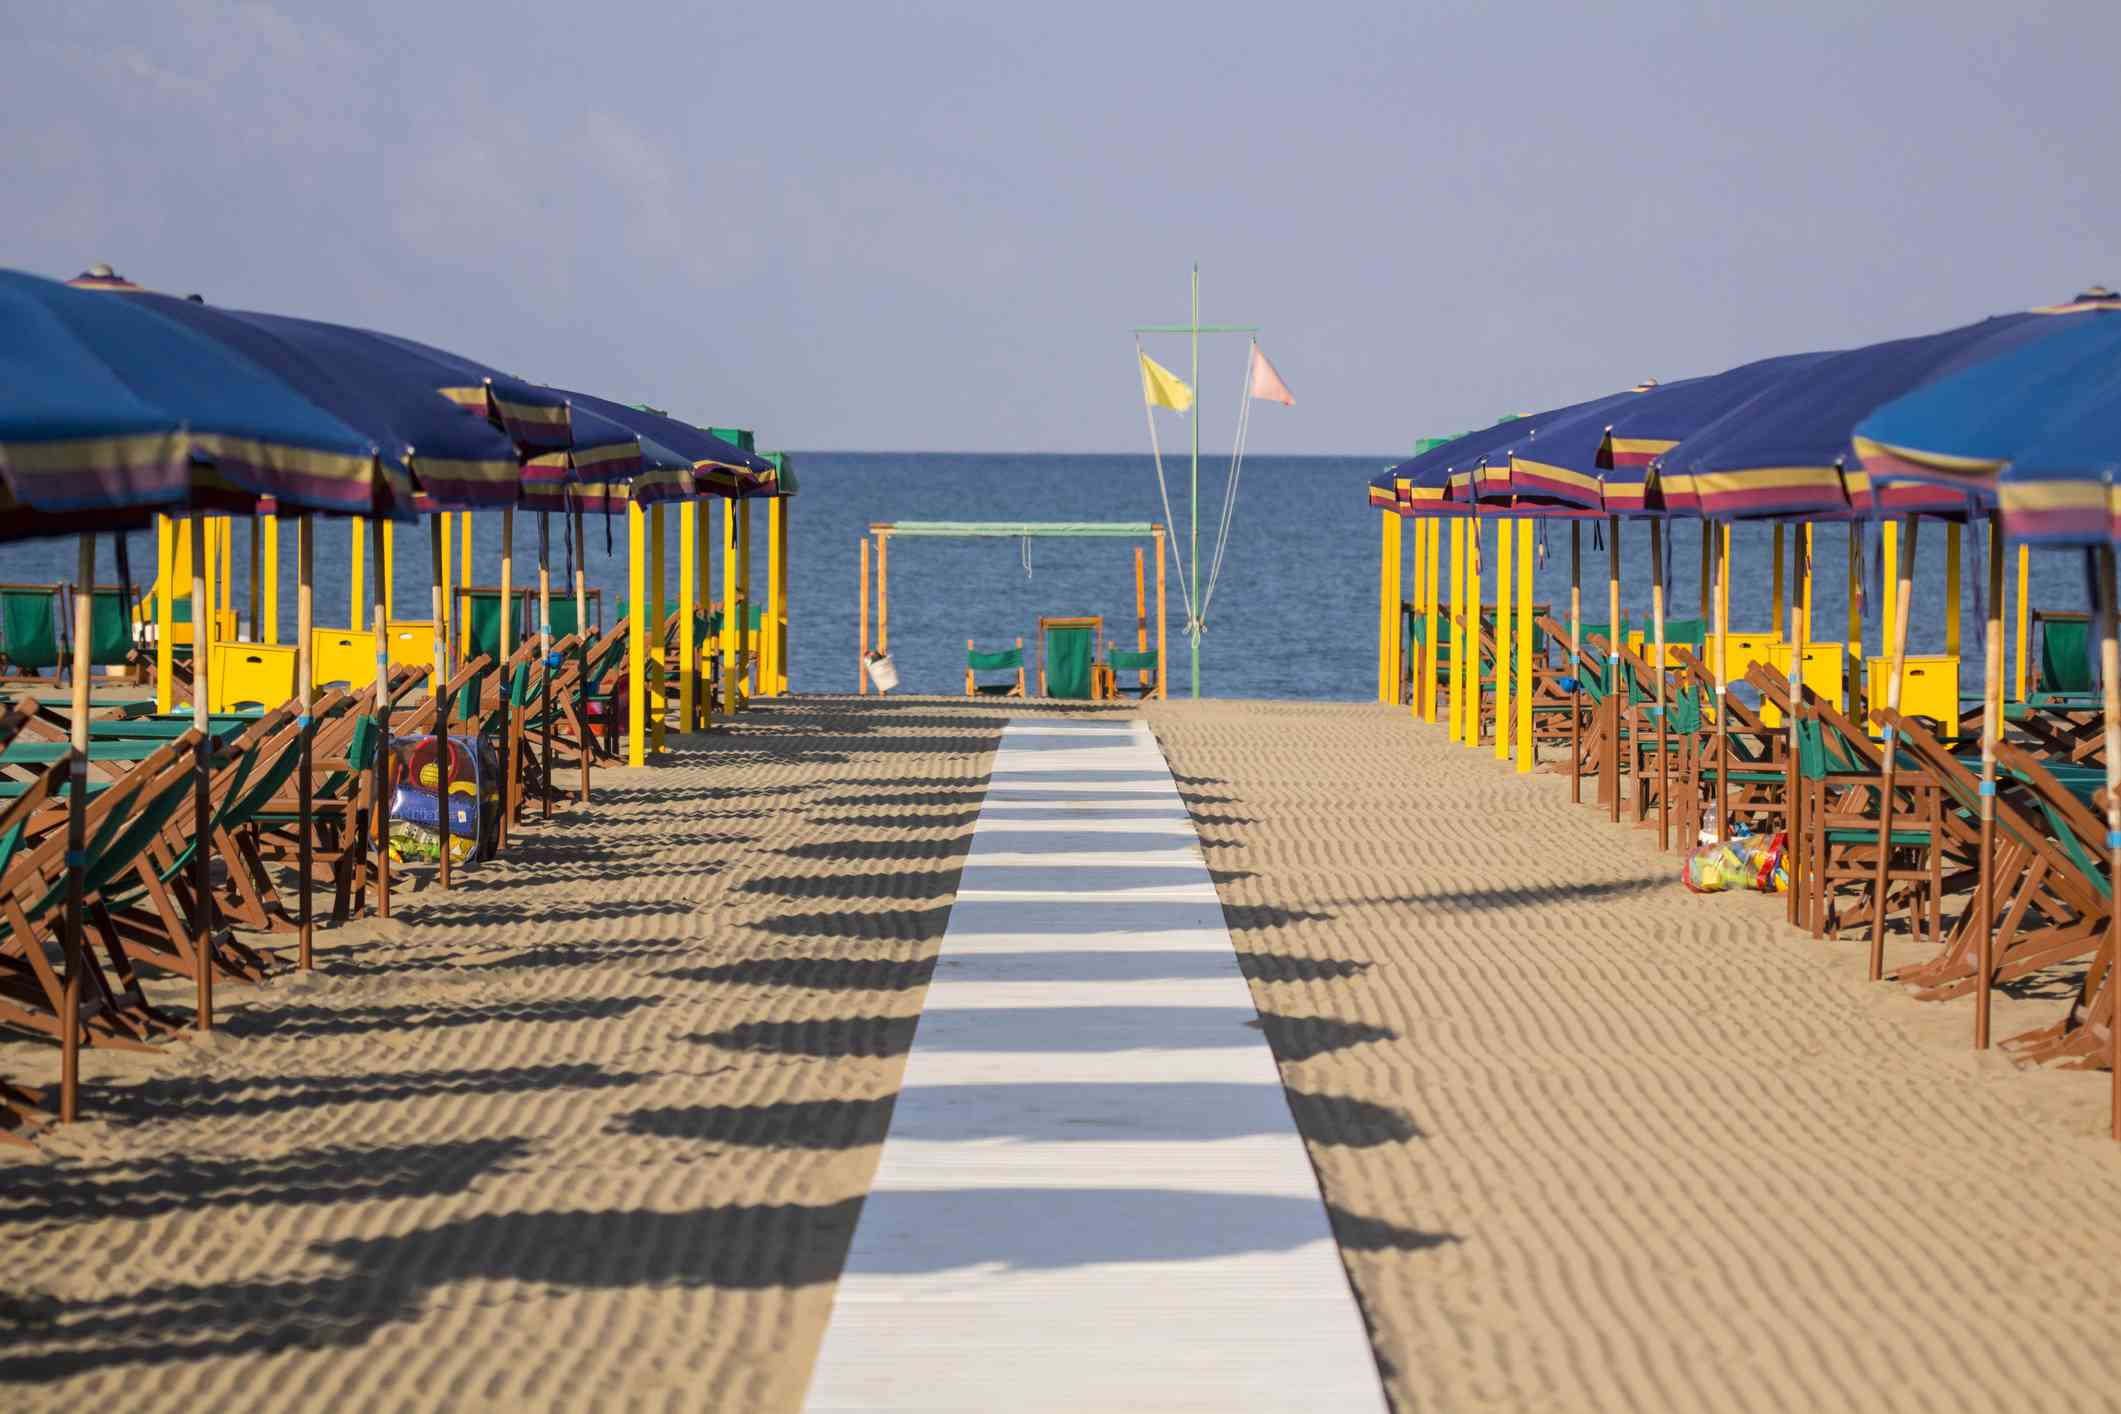 A beach club, complete with raked sand awaits guests at Forte dei Marmi